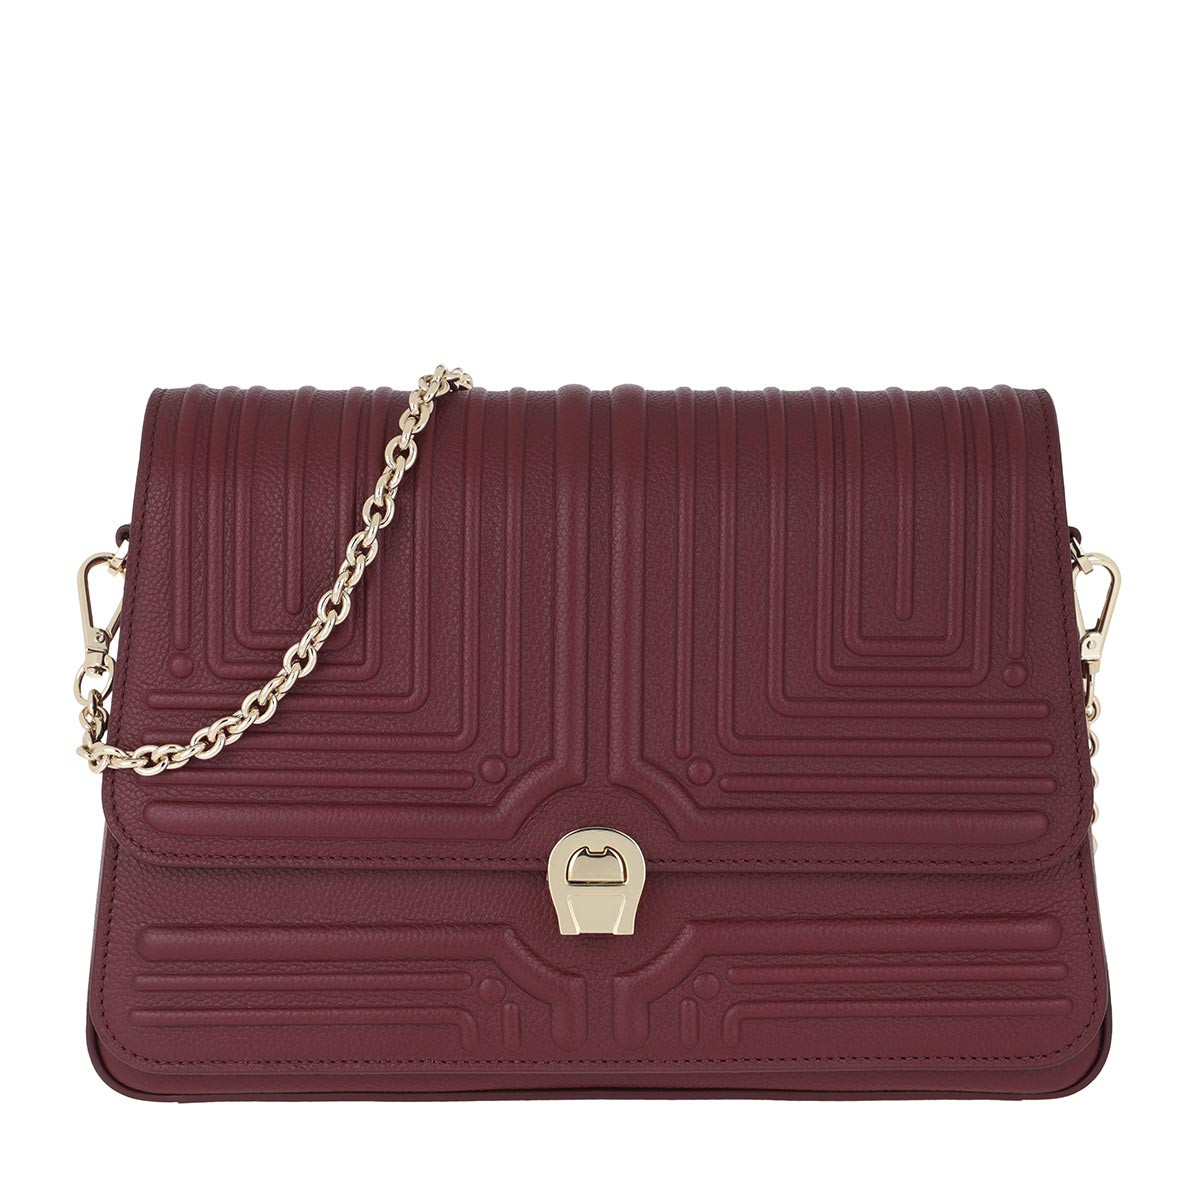 Aigner Umhängetasche - Crossbody Bag Burgundy - in rot - für Damen